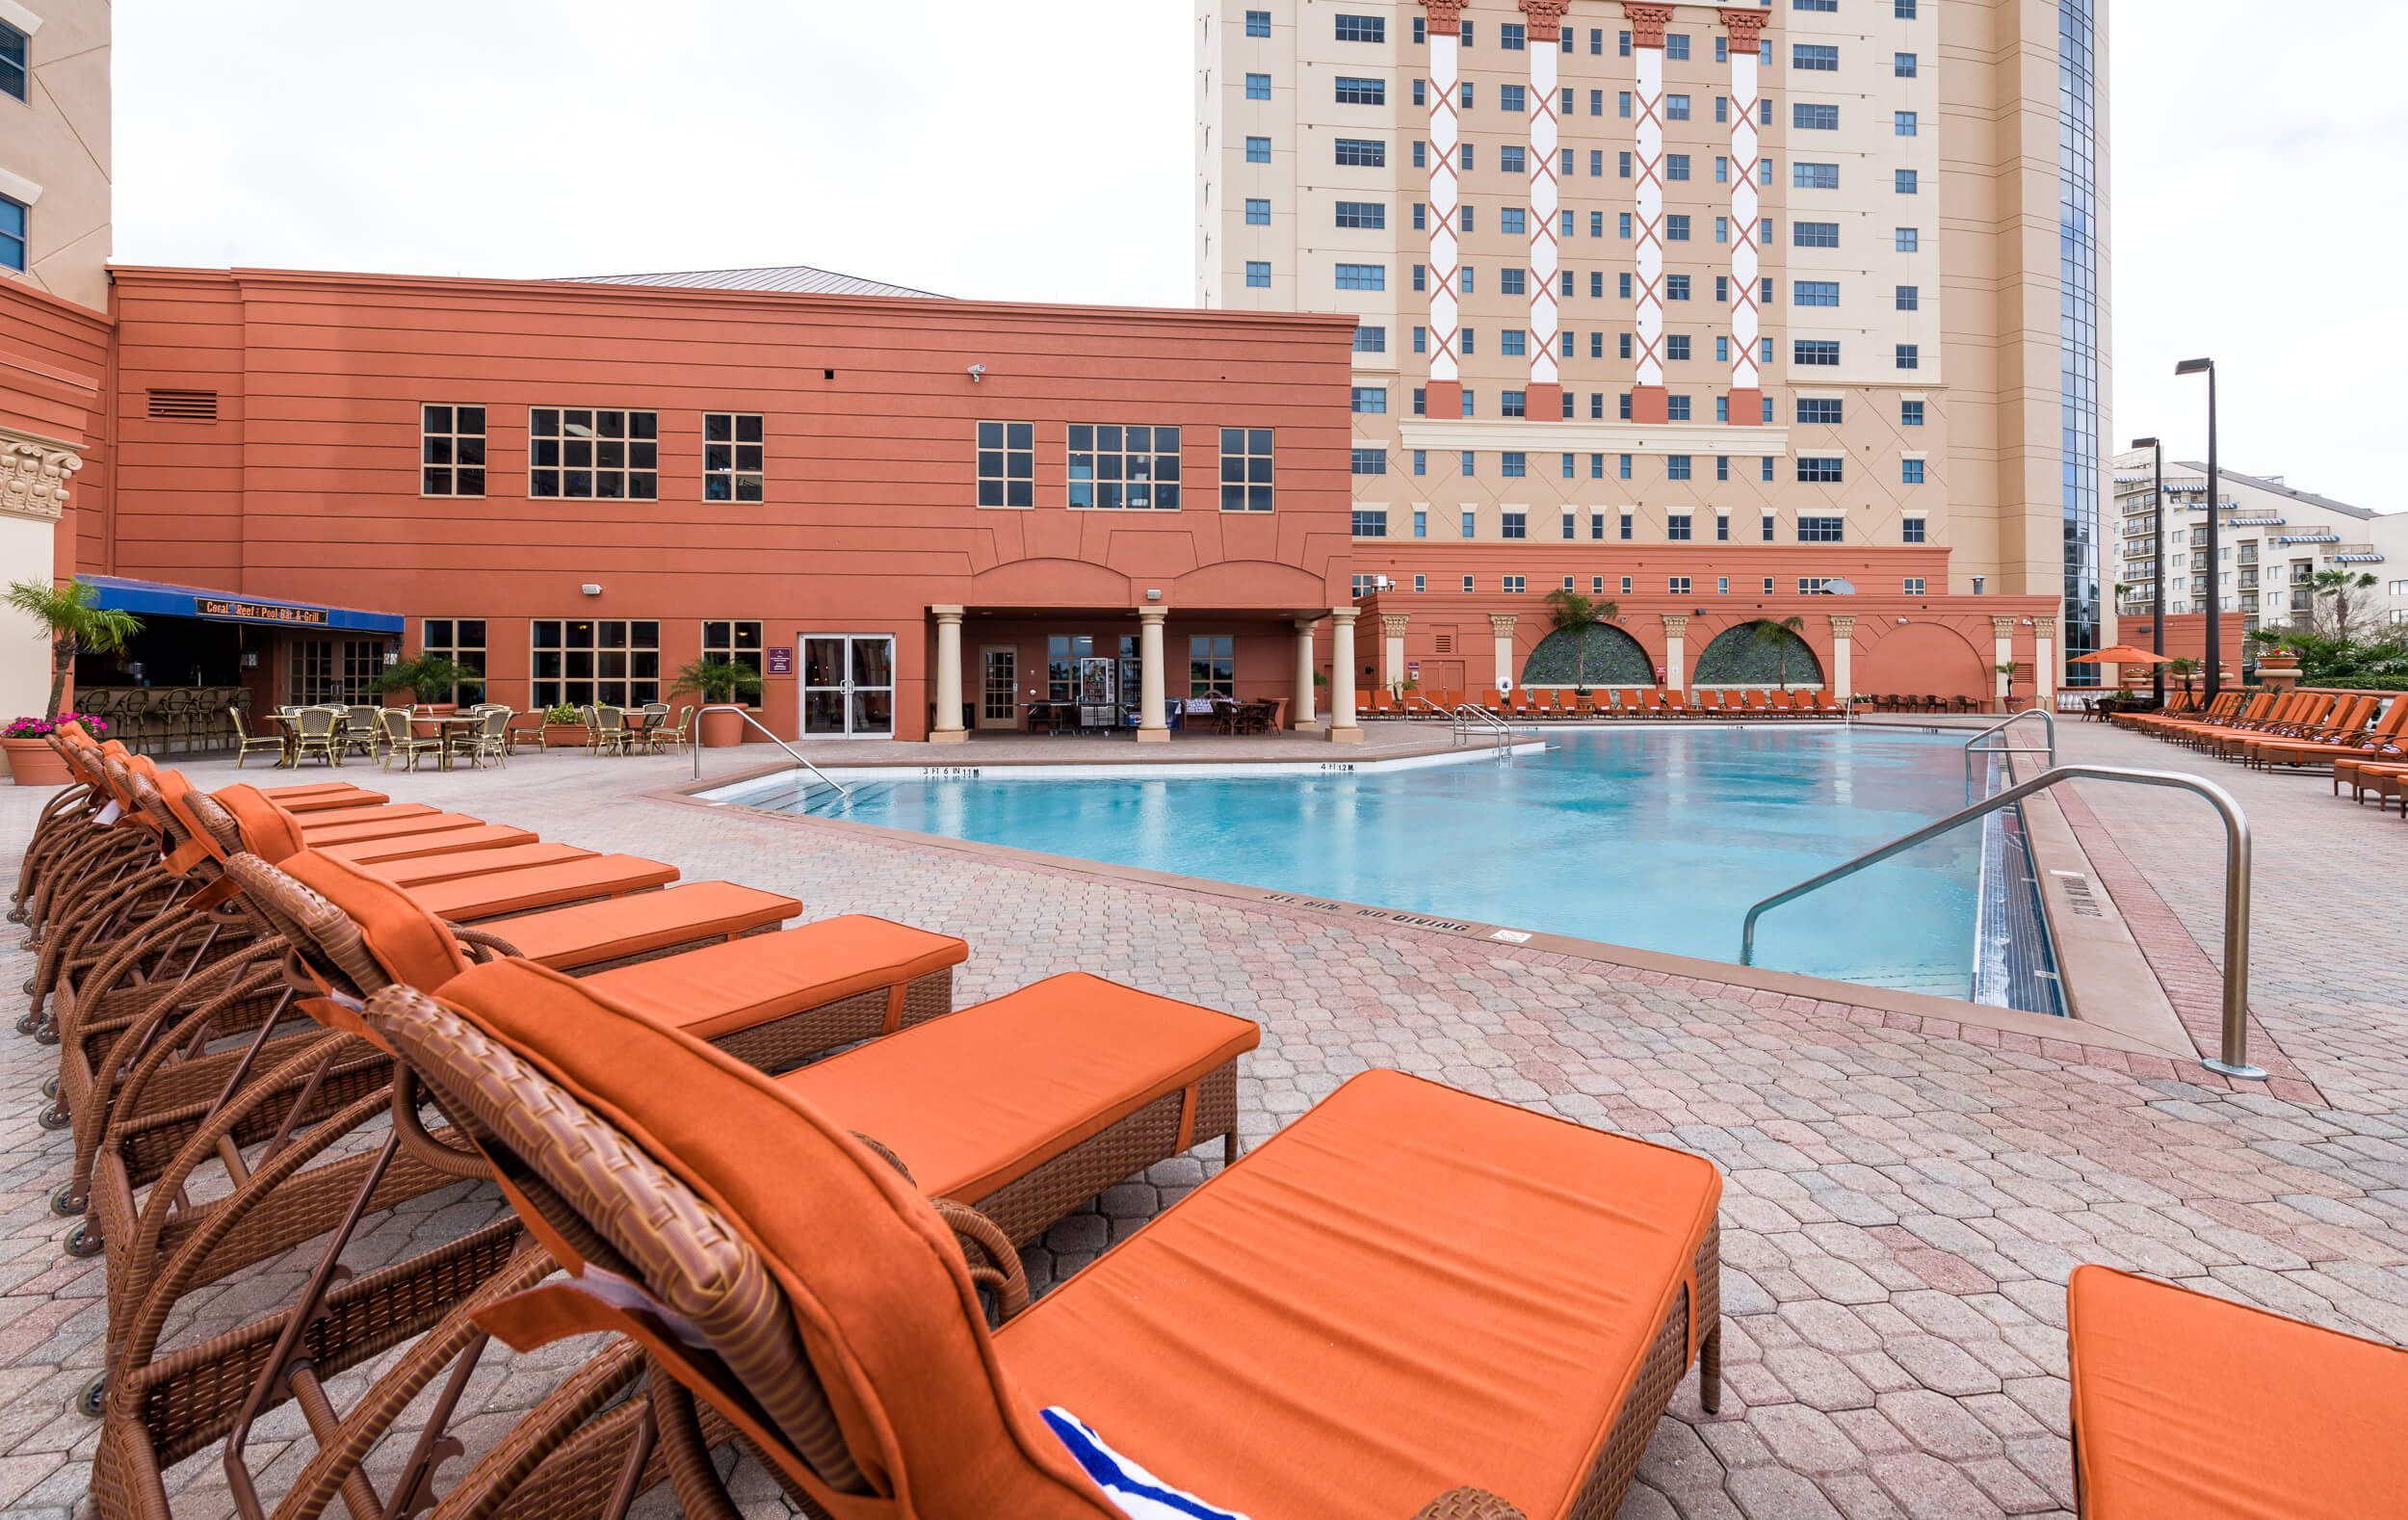 Pool Deck with View of Building | Westgate Palace Resort | Orlando, FL | Westgate Resorts